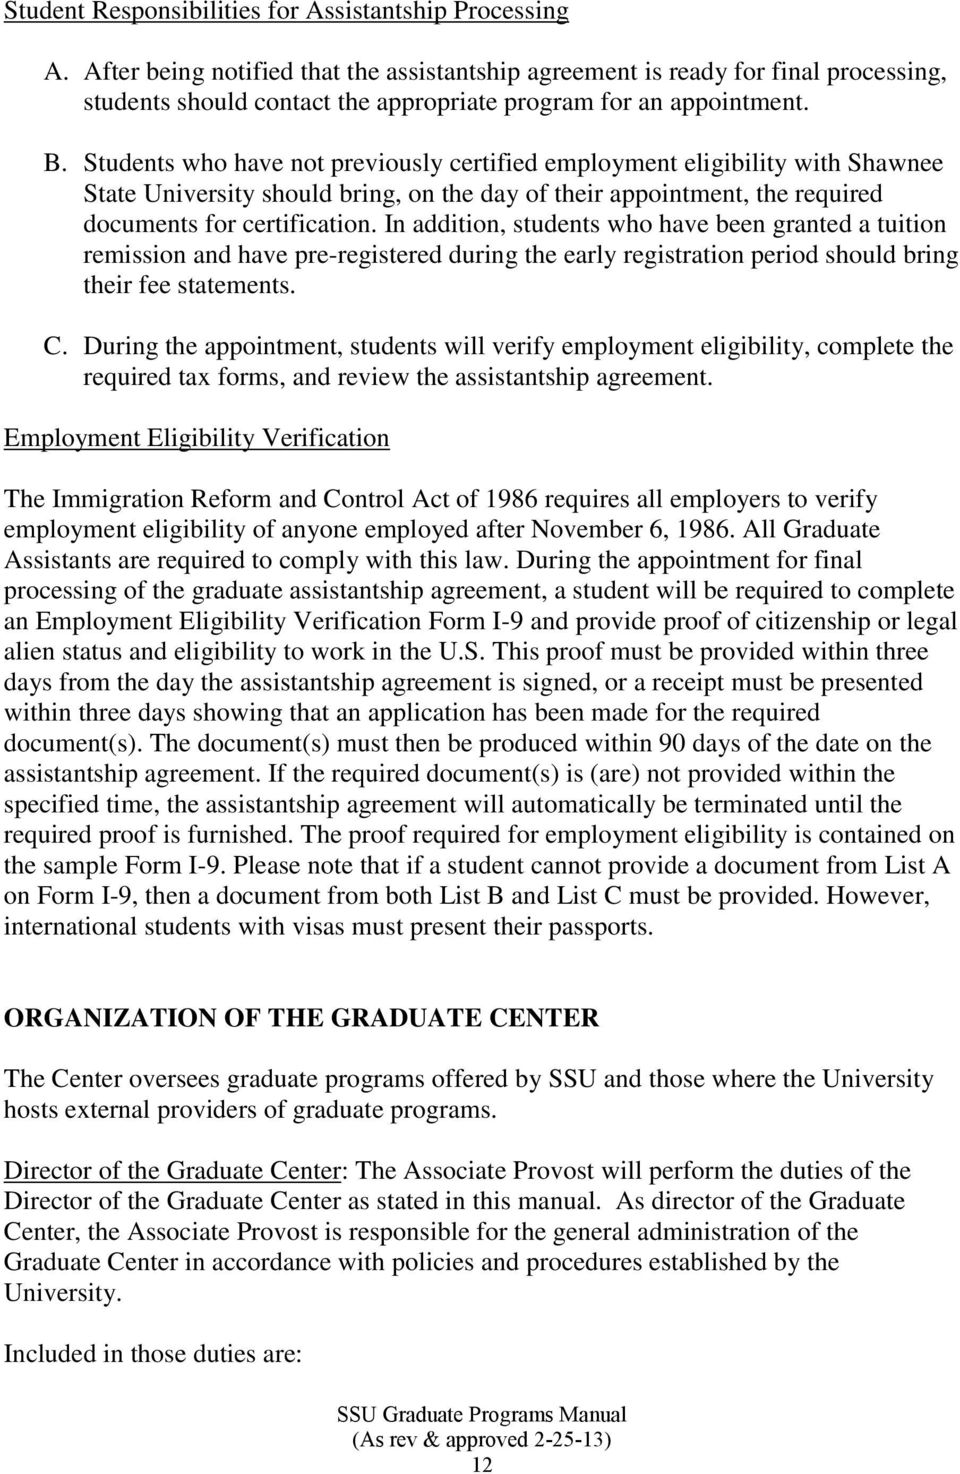 Students who have not previously certified employment eligibility with Shawnee State University should bring, on the day of their appointment, the required documents for certification.